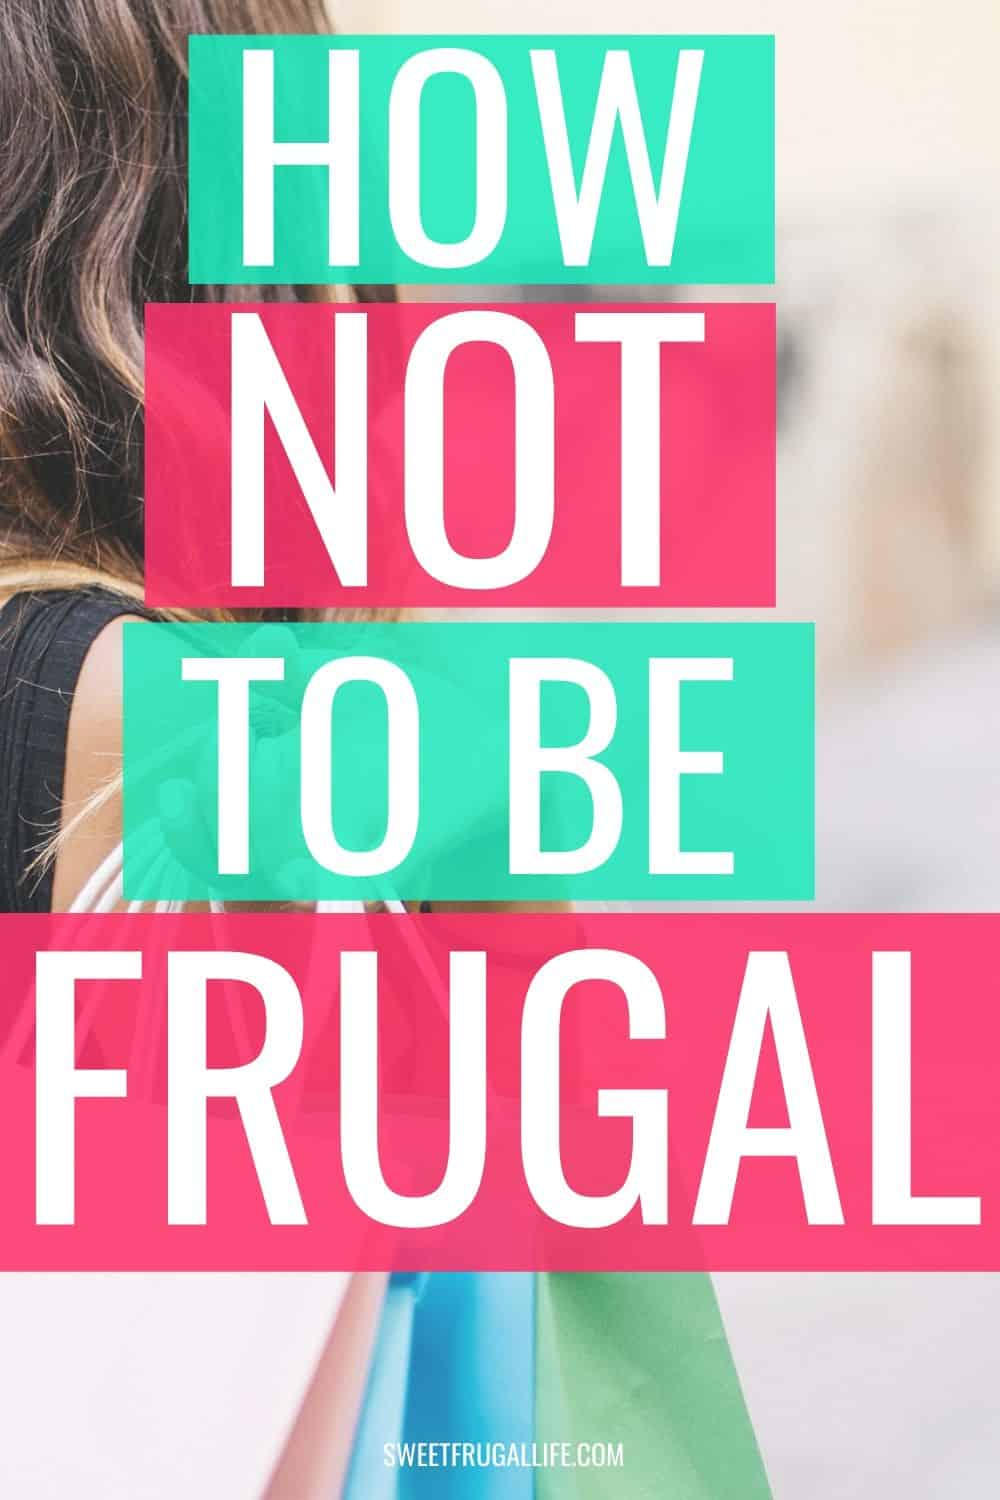 how to not be frugal - frugal tips